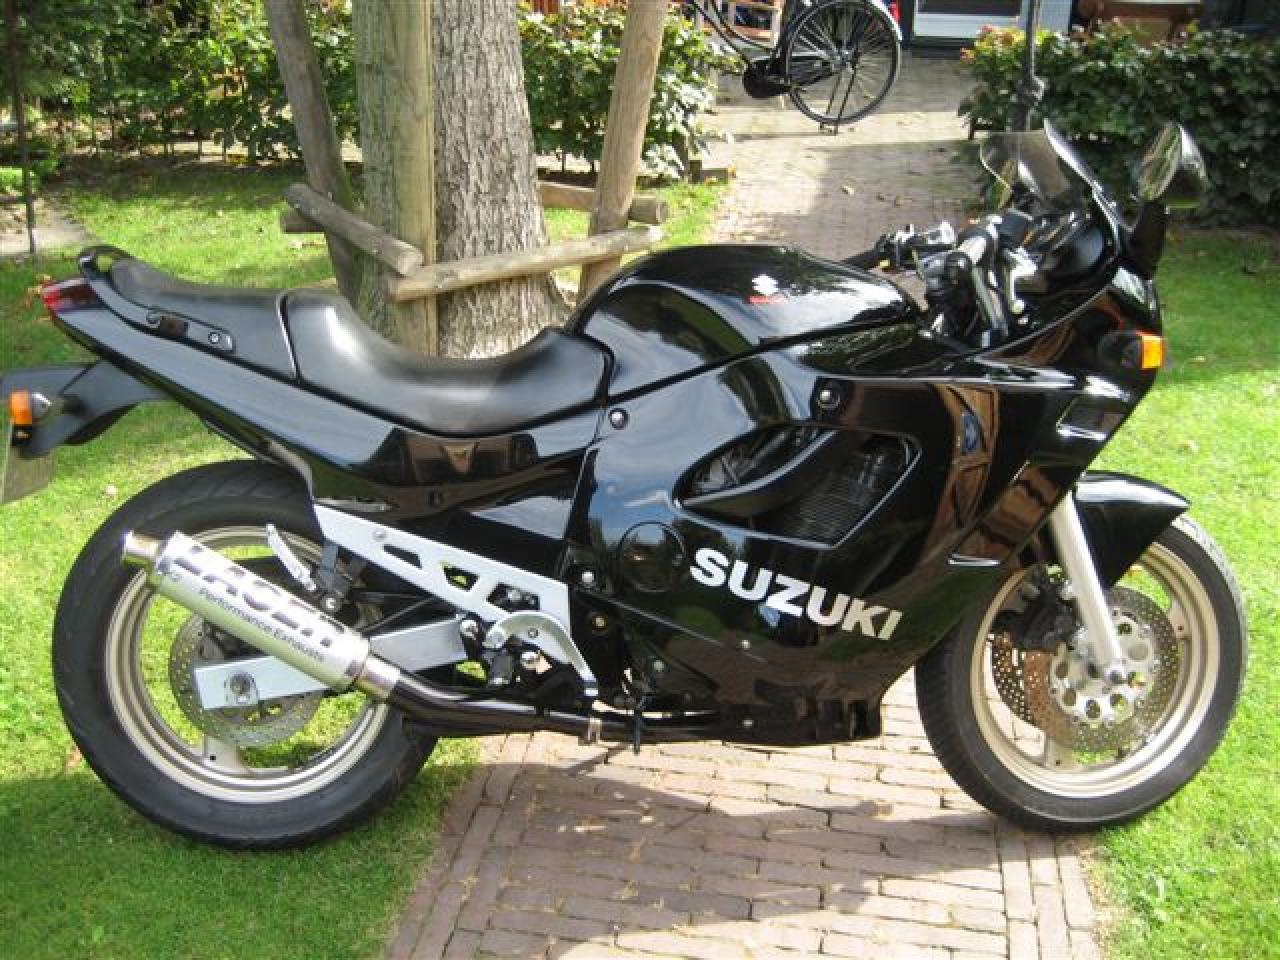 1992 suzuki gsx 600 f moto zombdrive com. Black Bedroom Furniture Sets. Home Design Ideas